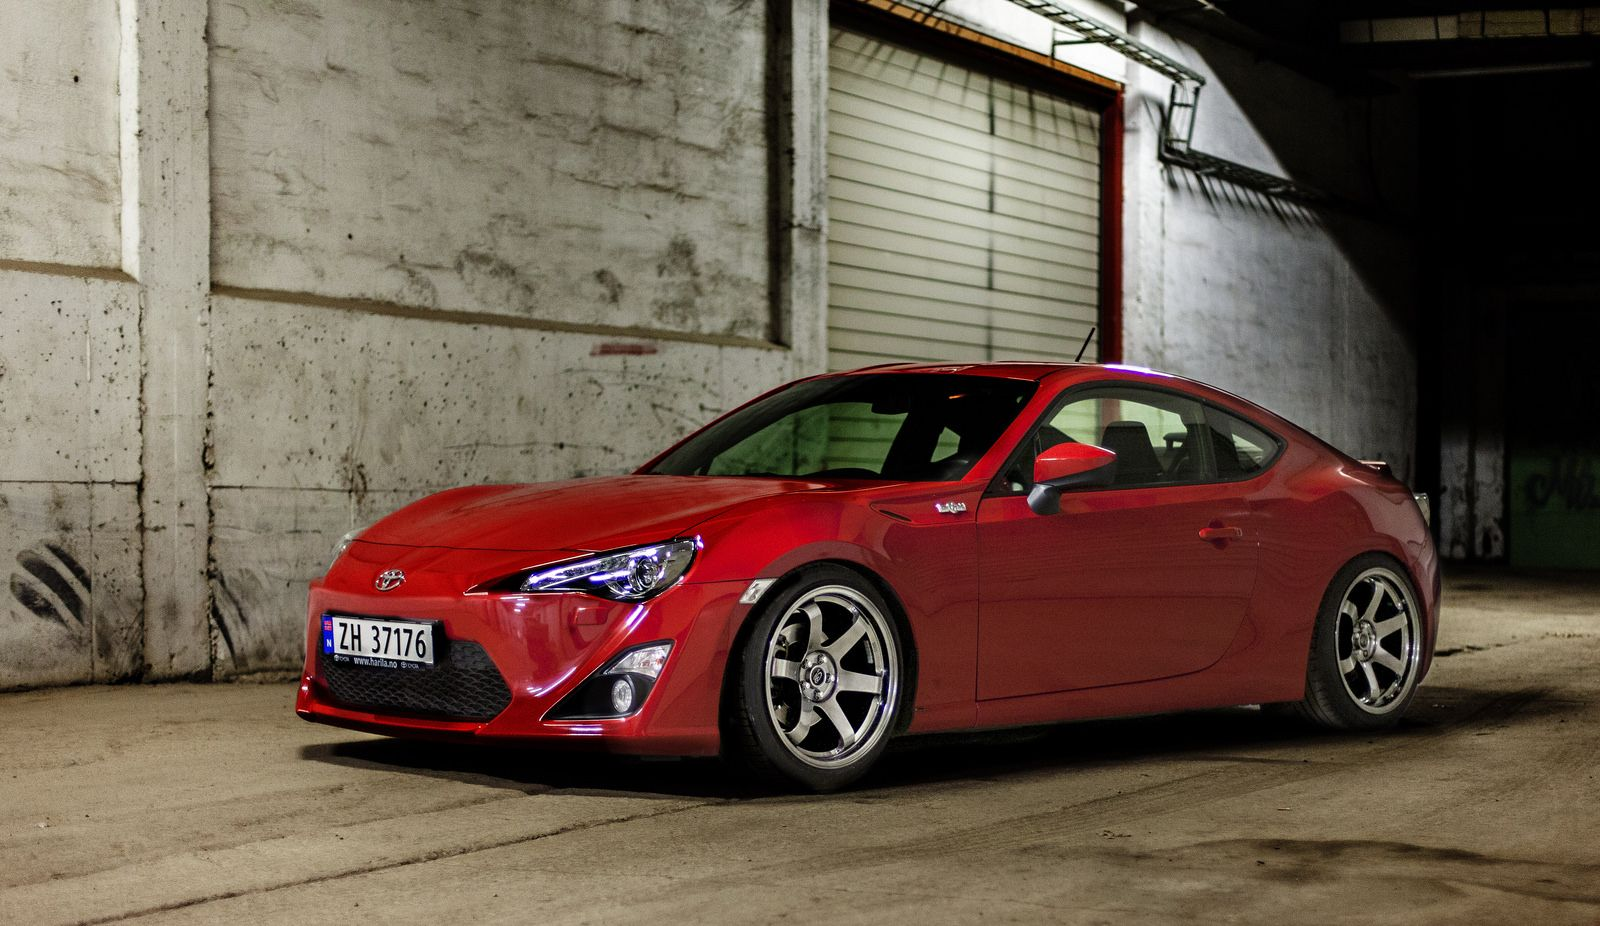 Toyota 86 revamping the sport compact car dsn vehicle pinterest toyota toyota 86 and cars